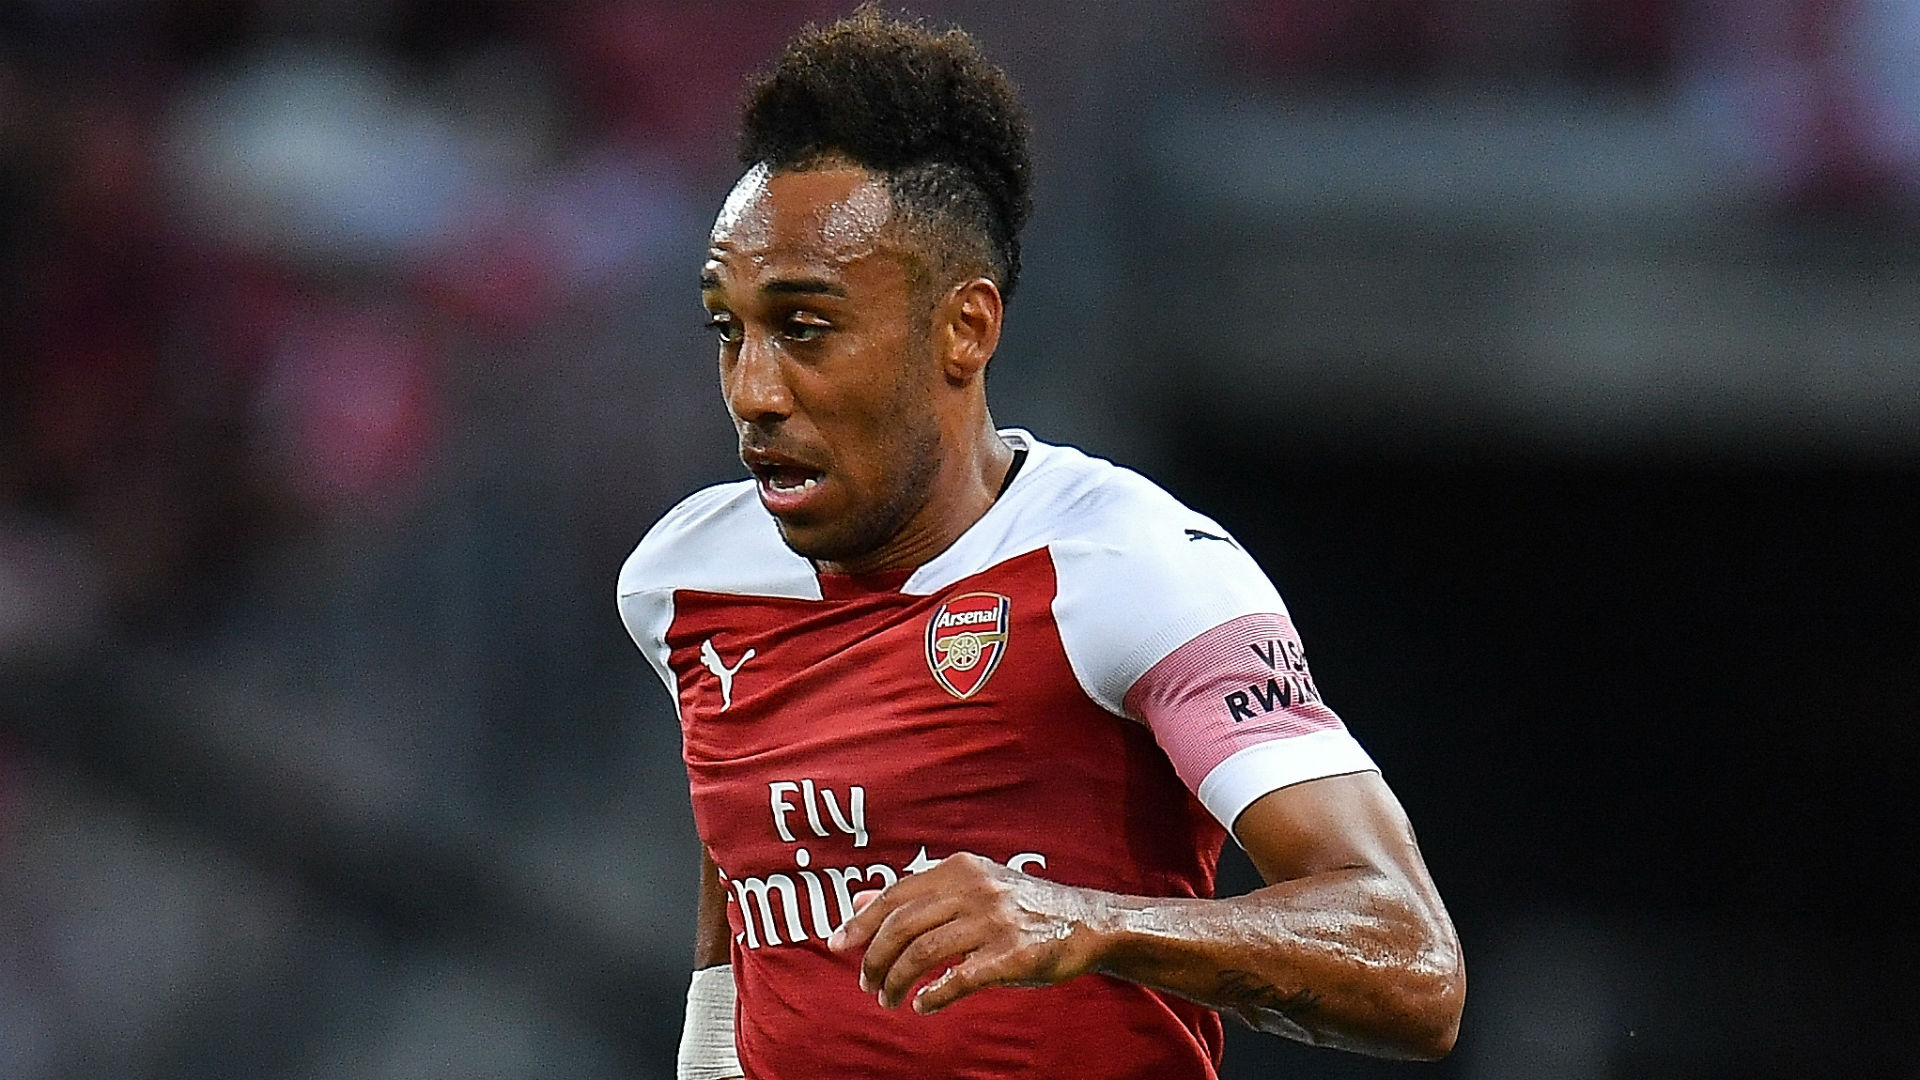 Arsenal News: Arsenal 2018-19 Season: Fixtures, Transfers, Squad Numbers